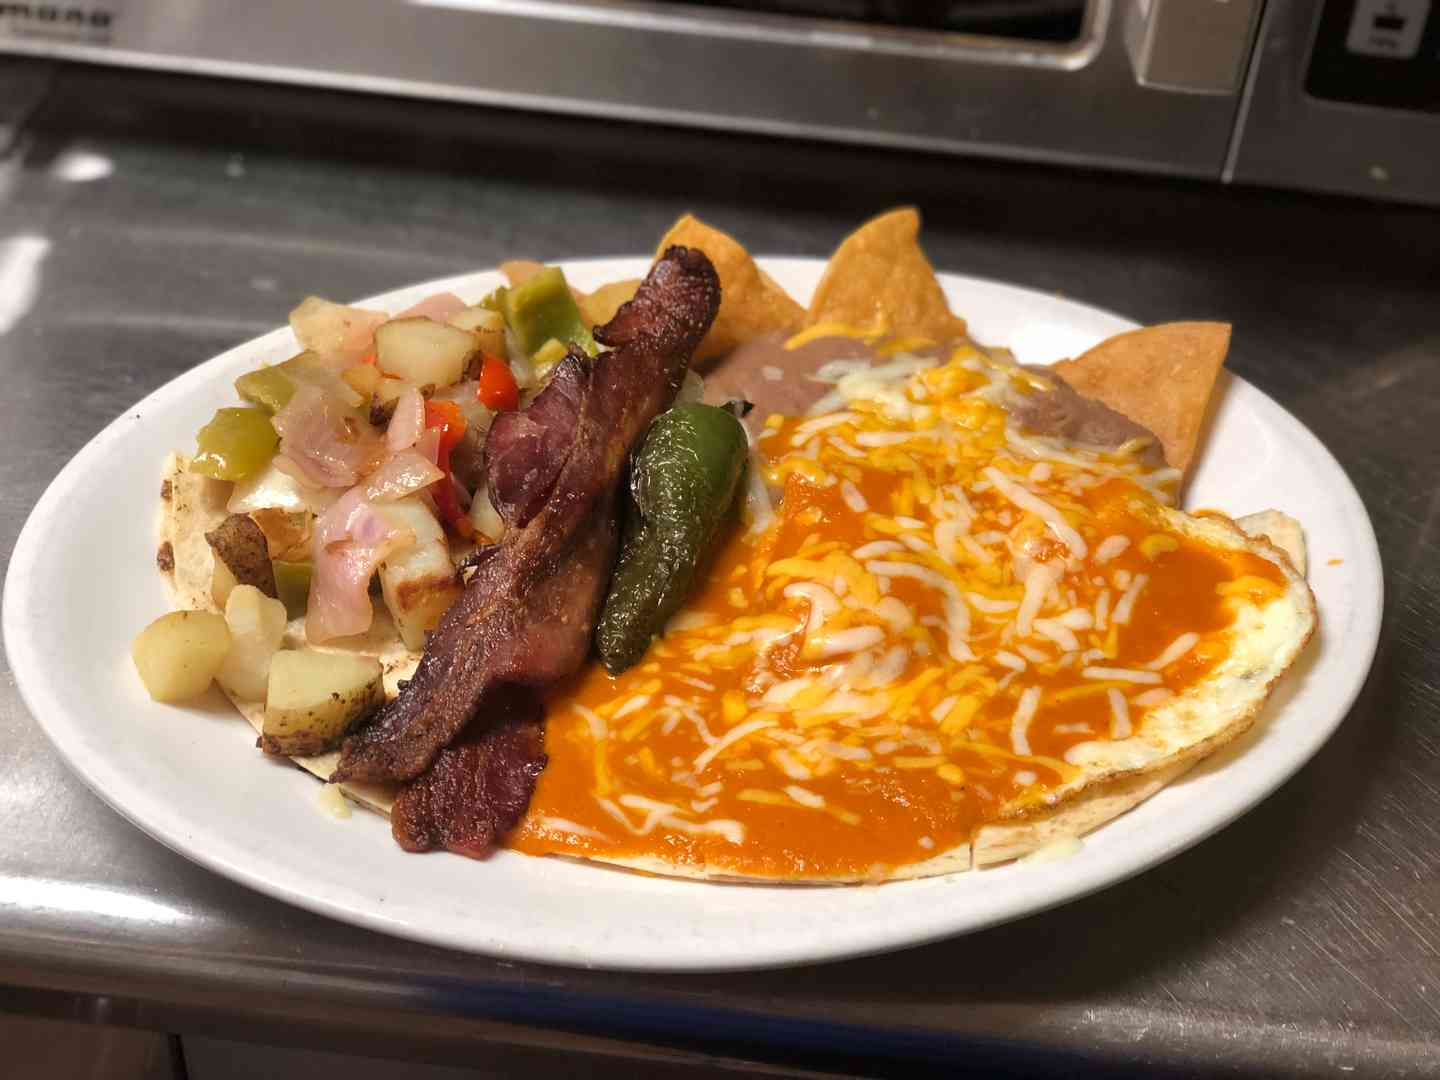 Quesadilla ranchero with basted eggs, and bacon